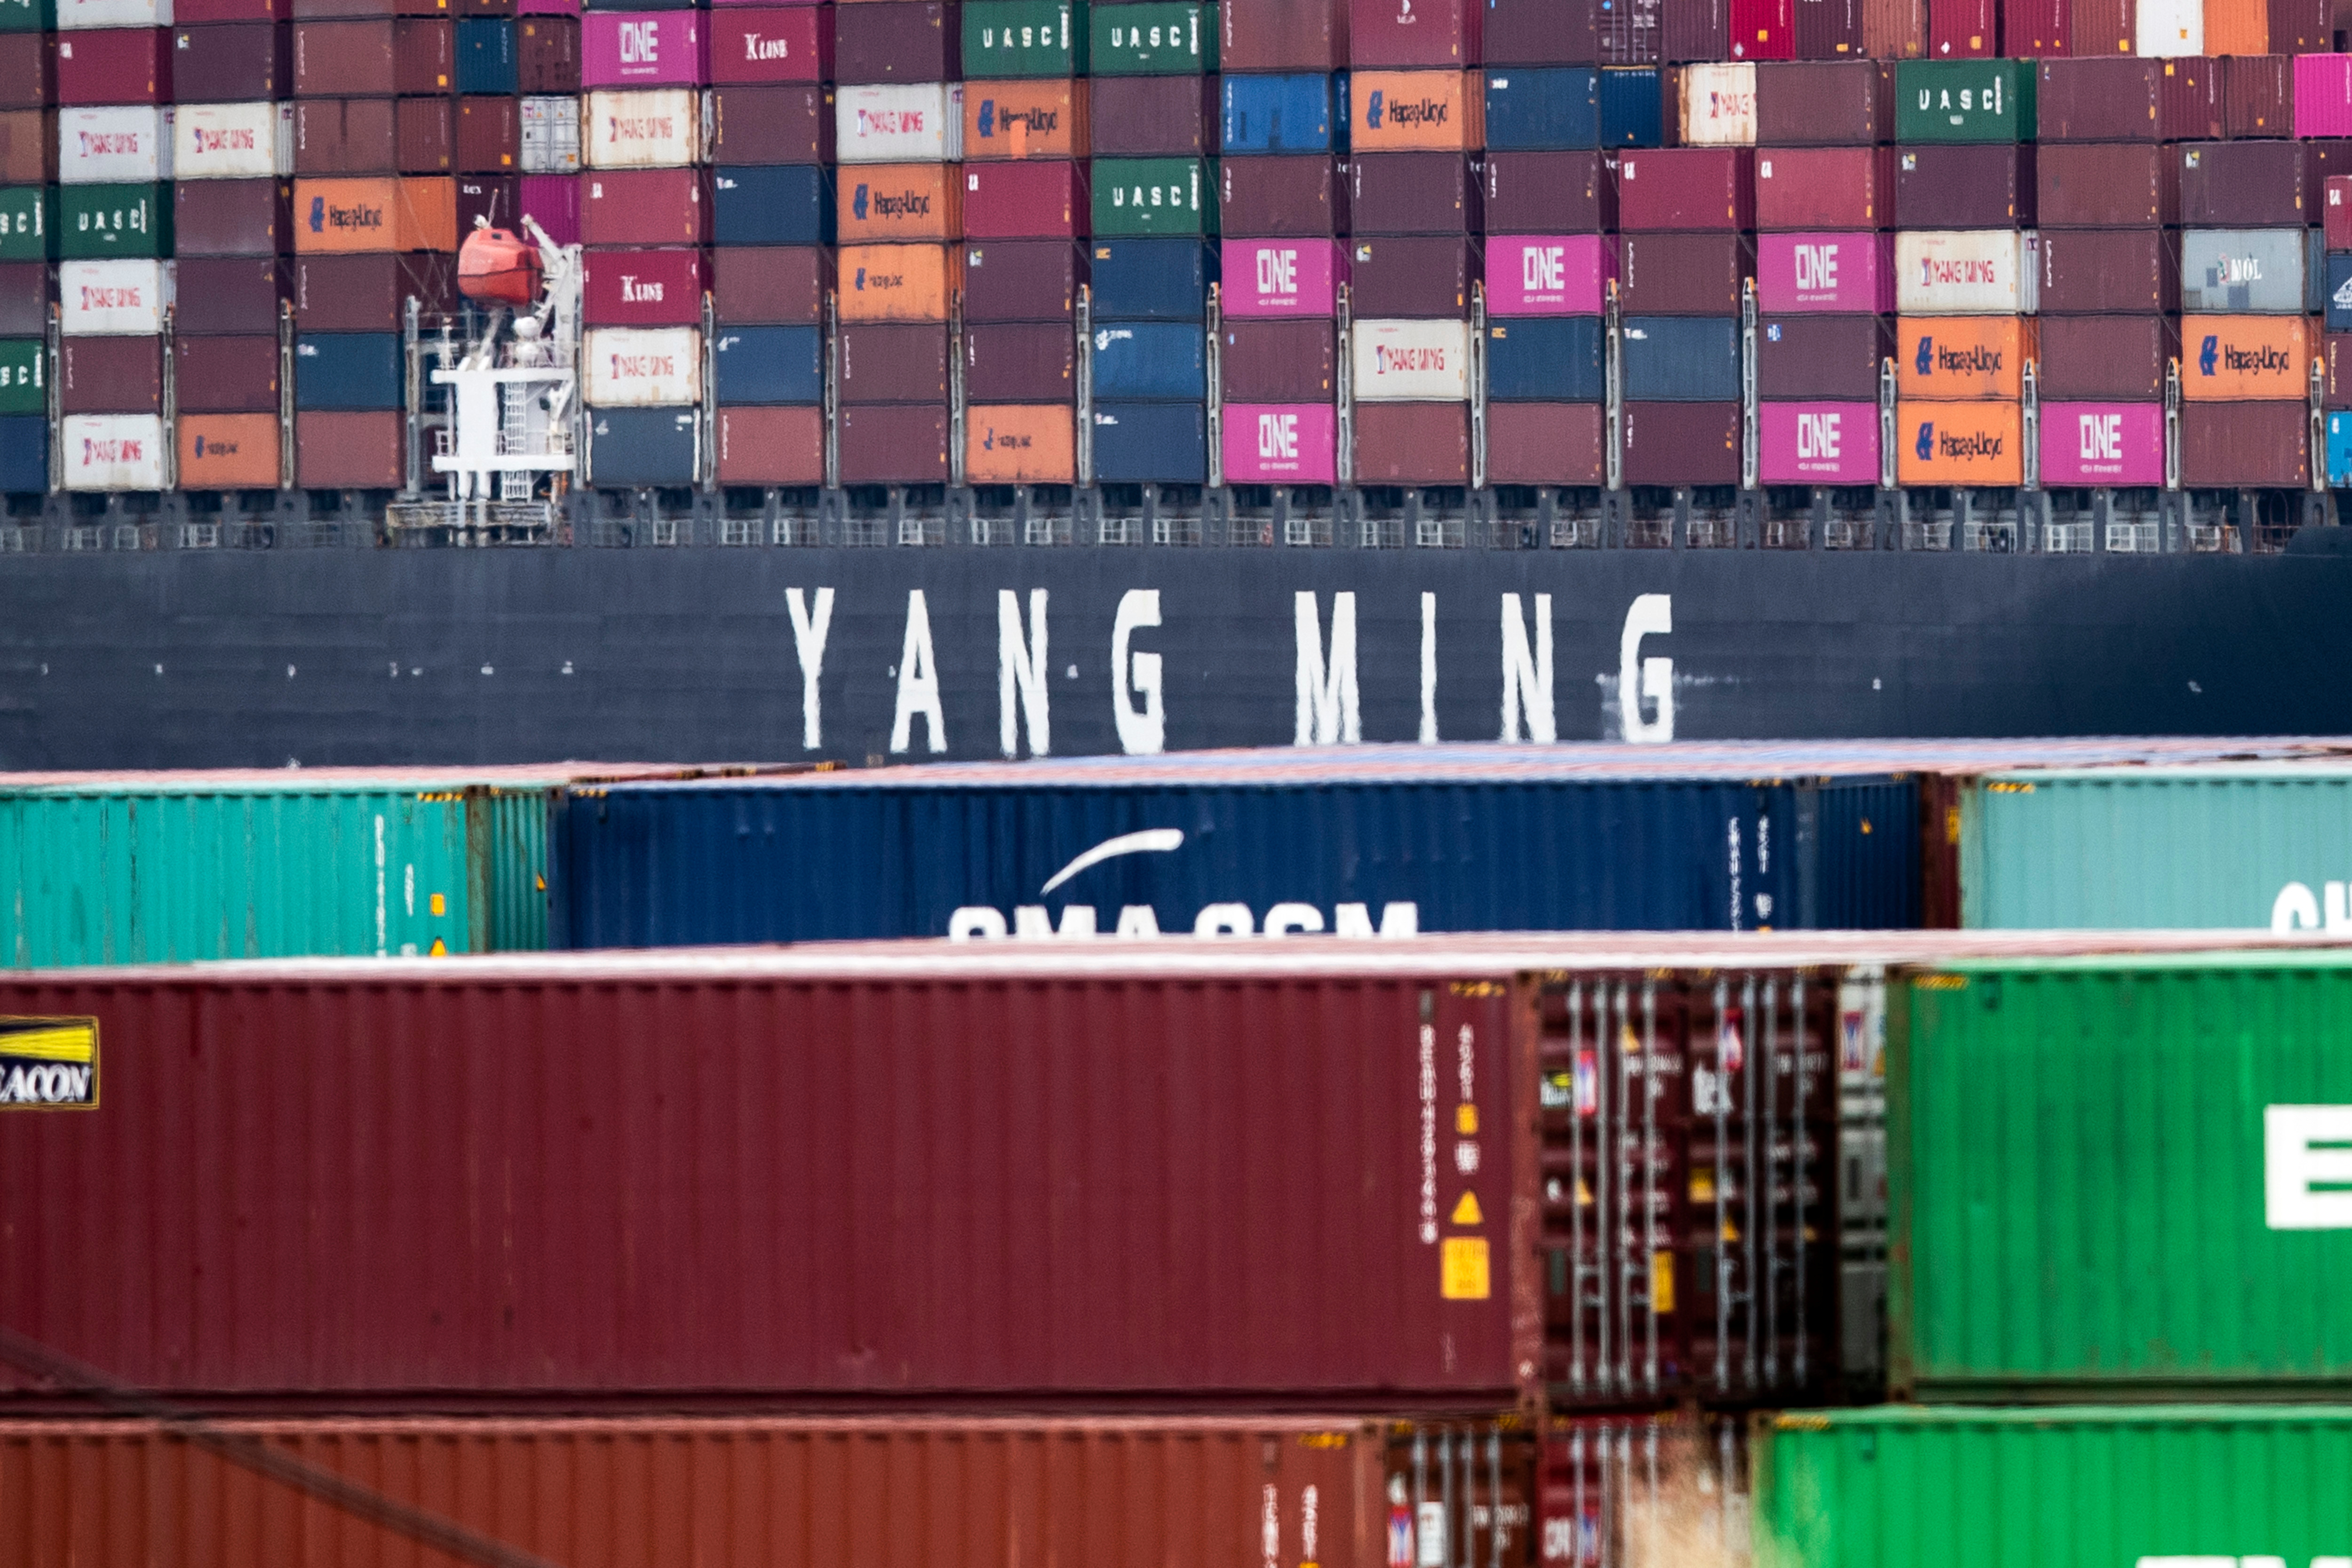 A cargo ship of Taiwanese transport company Yang Ming, loaded with containers, sits docked at the Los Angeles Port, California, USA, 13 May 2019.